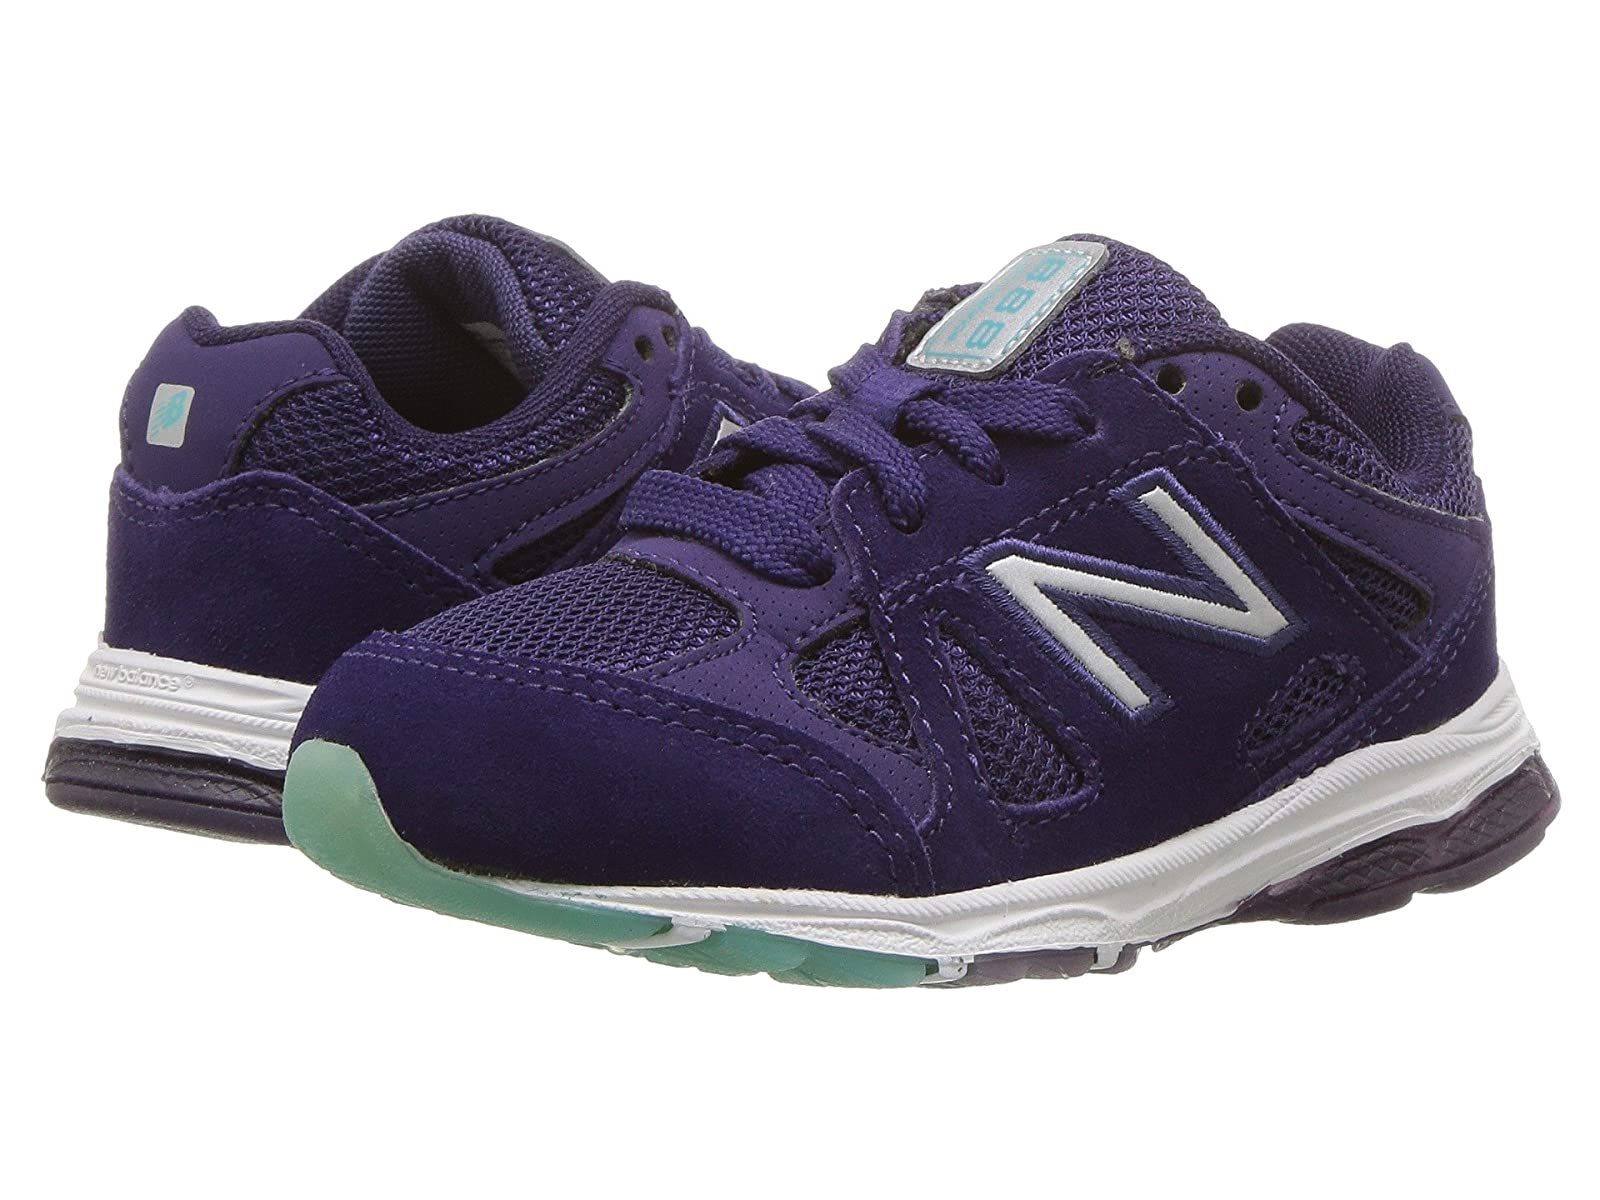 New Balance Kids KJ888v1I (Infant/Toddler)Atmospheric grades have affordable shoes